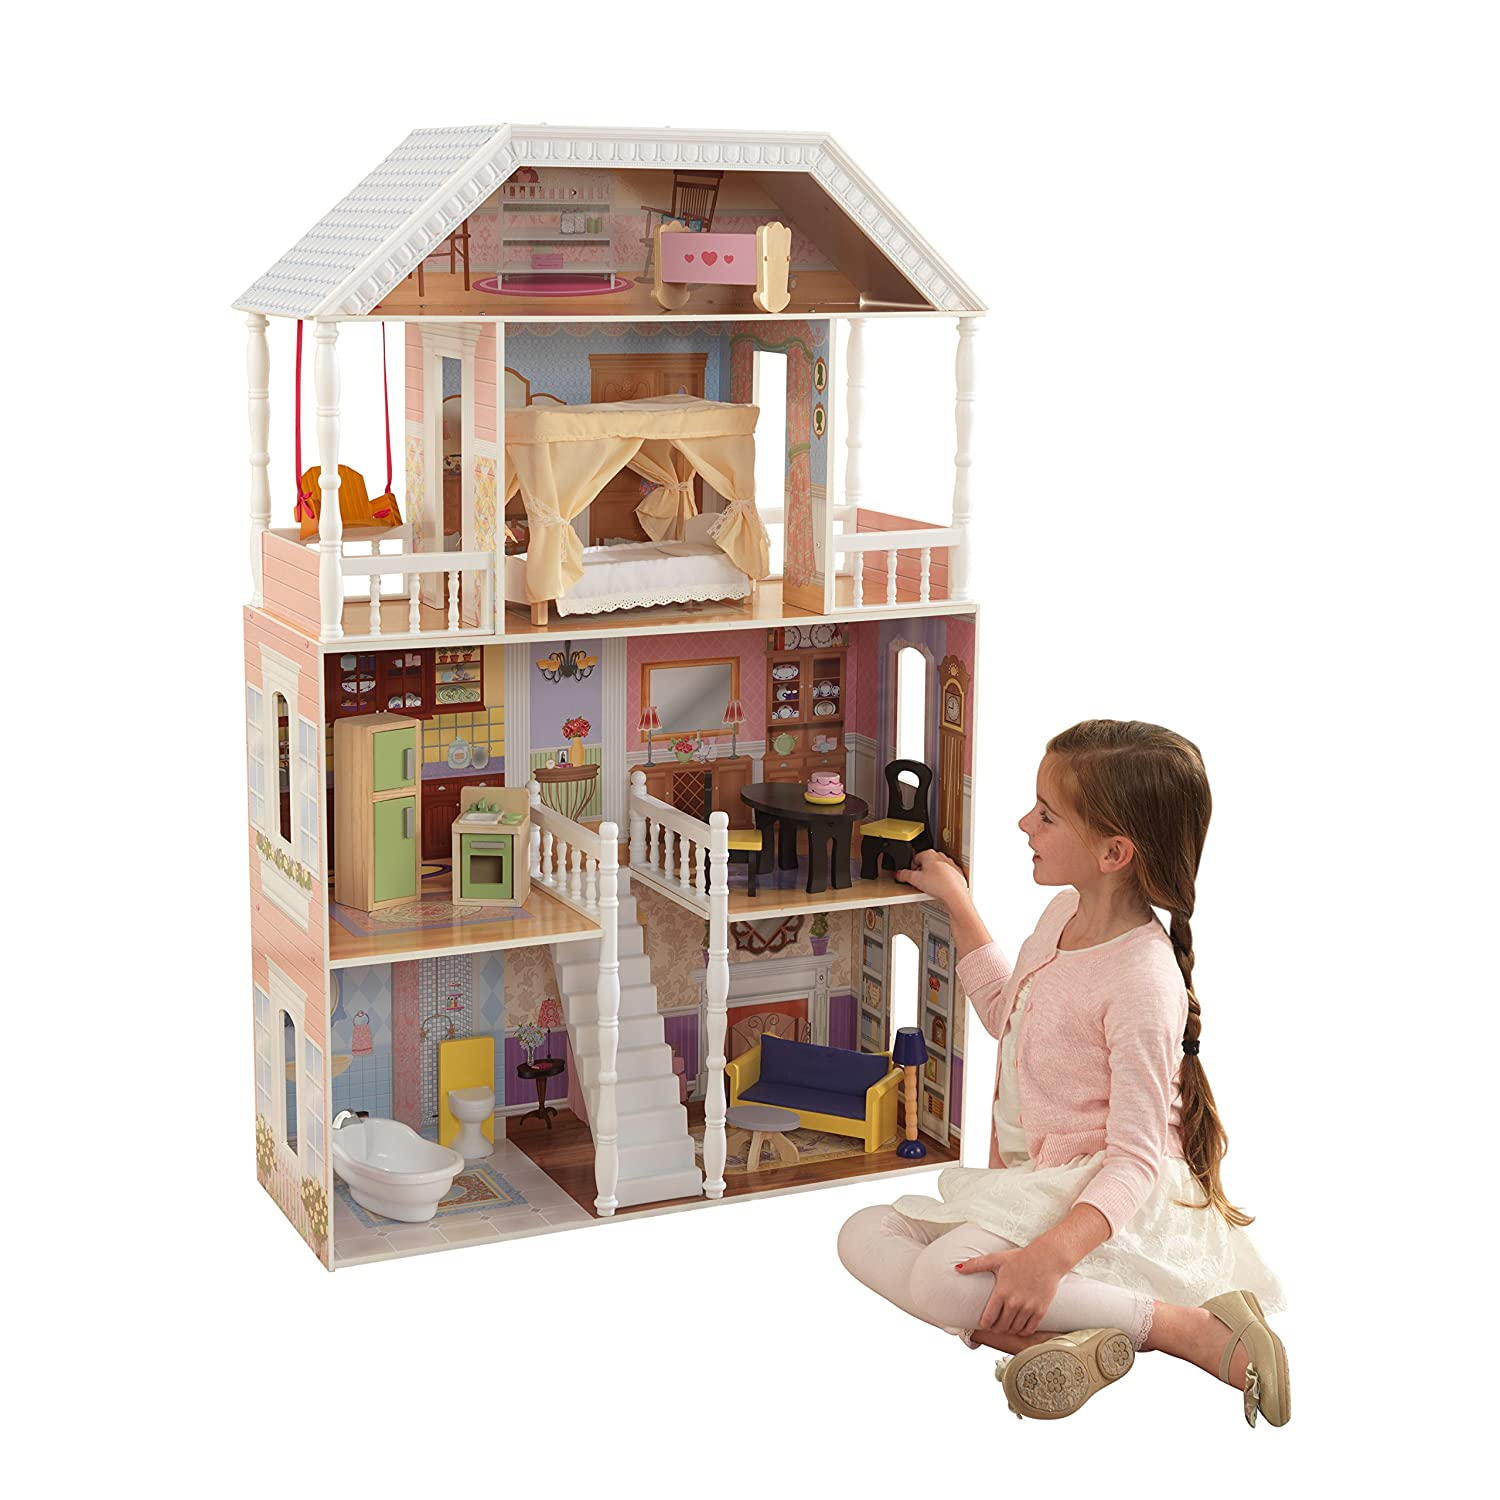 Top 9 Best Dollhouse for Toddlers Reviews in 2019 8